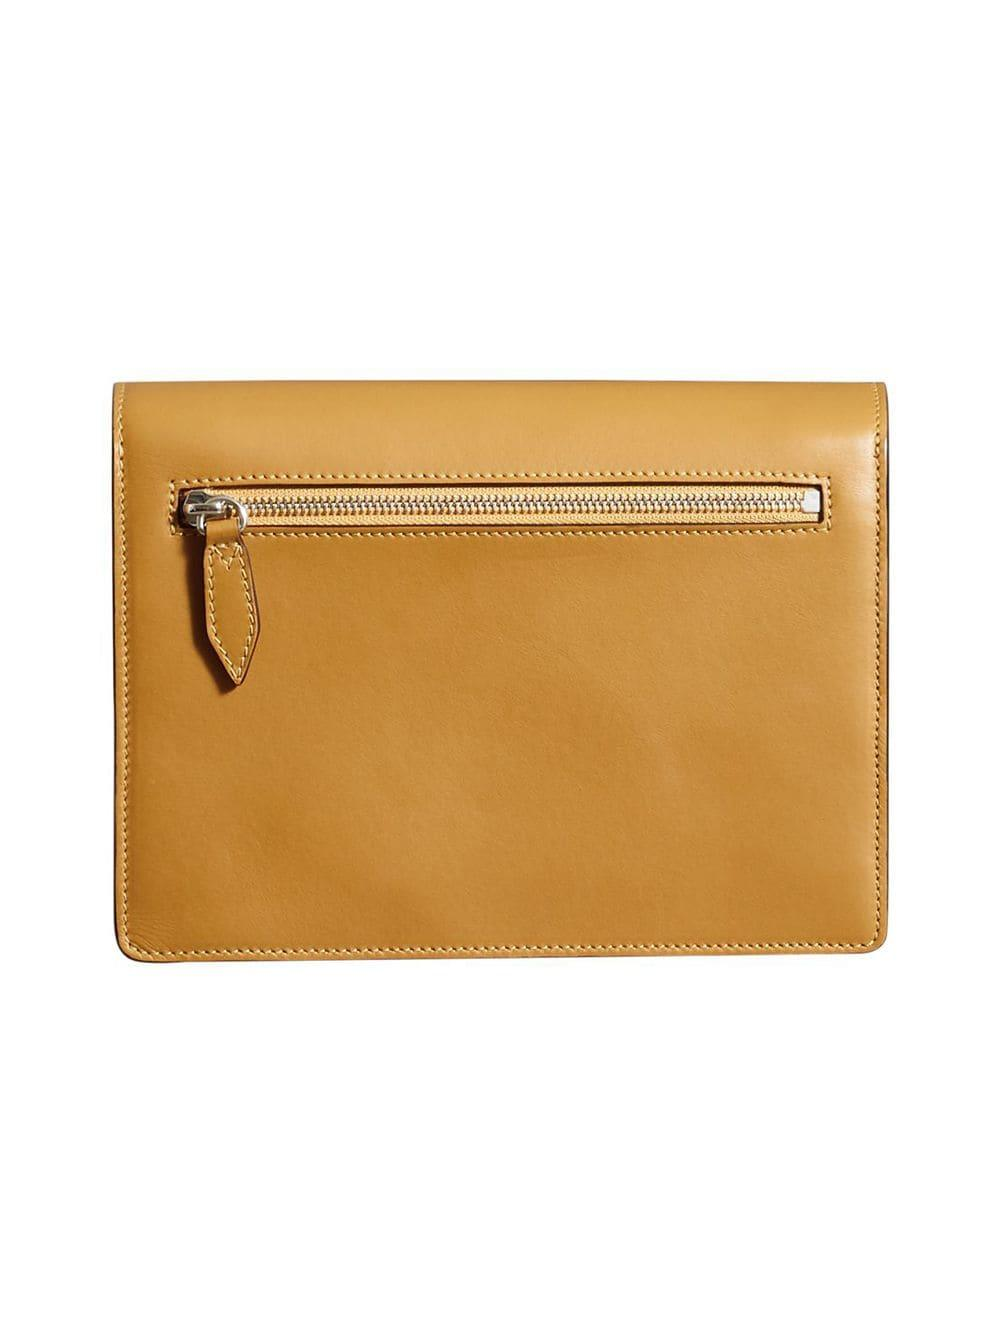 Burberry Two-tone Leather Crossbody Bag in Yellow - Lyst 19235b4c7cb47